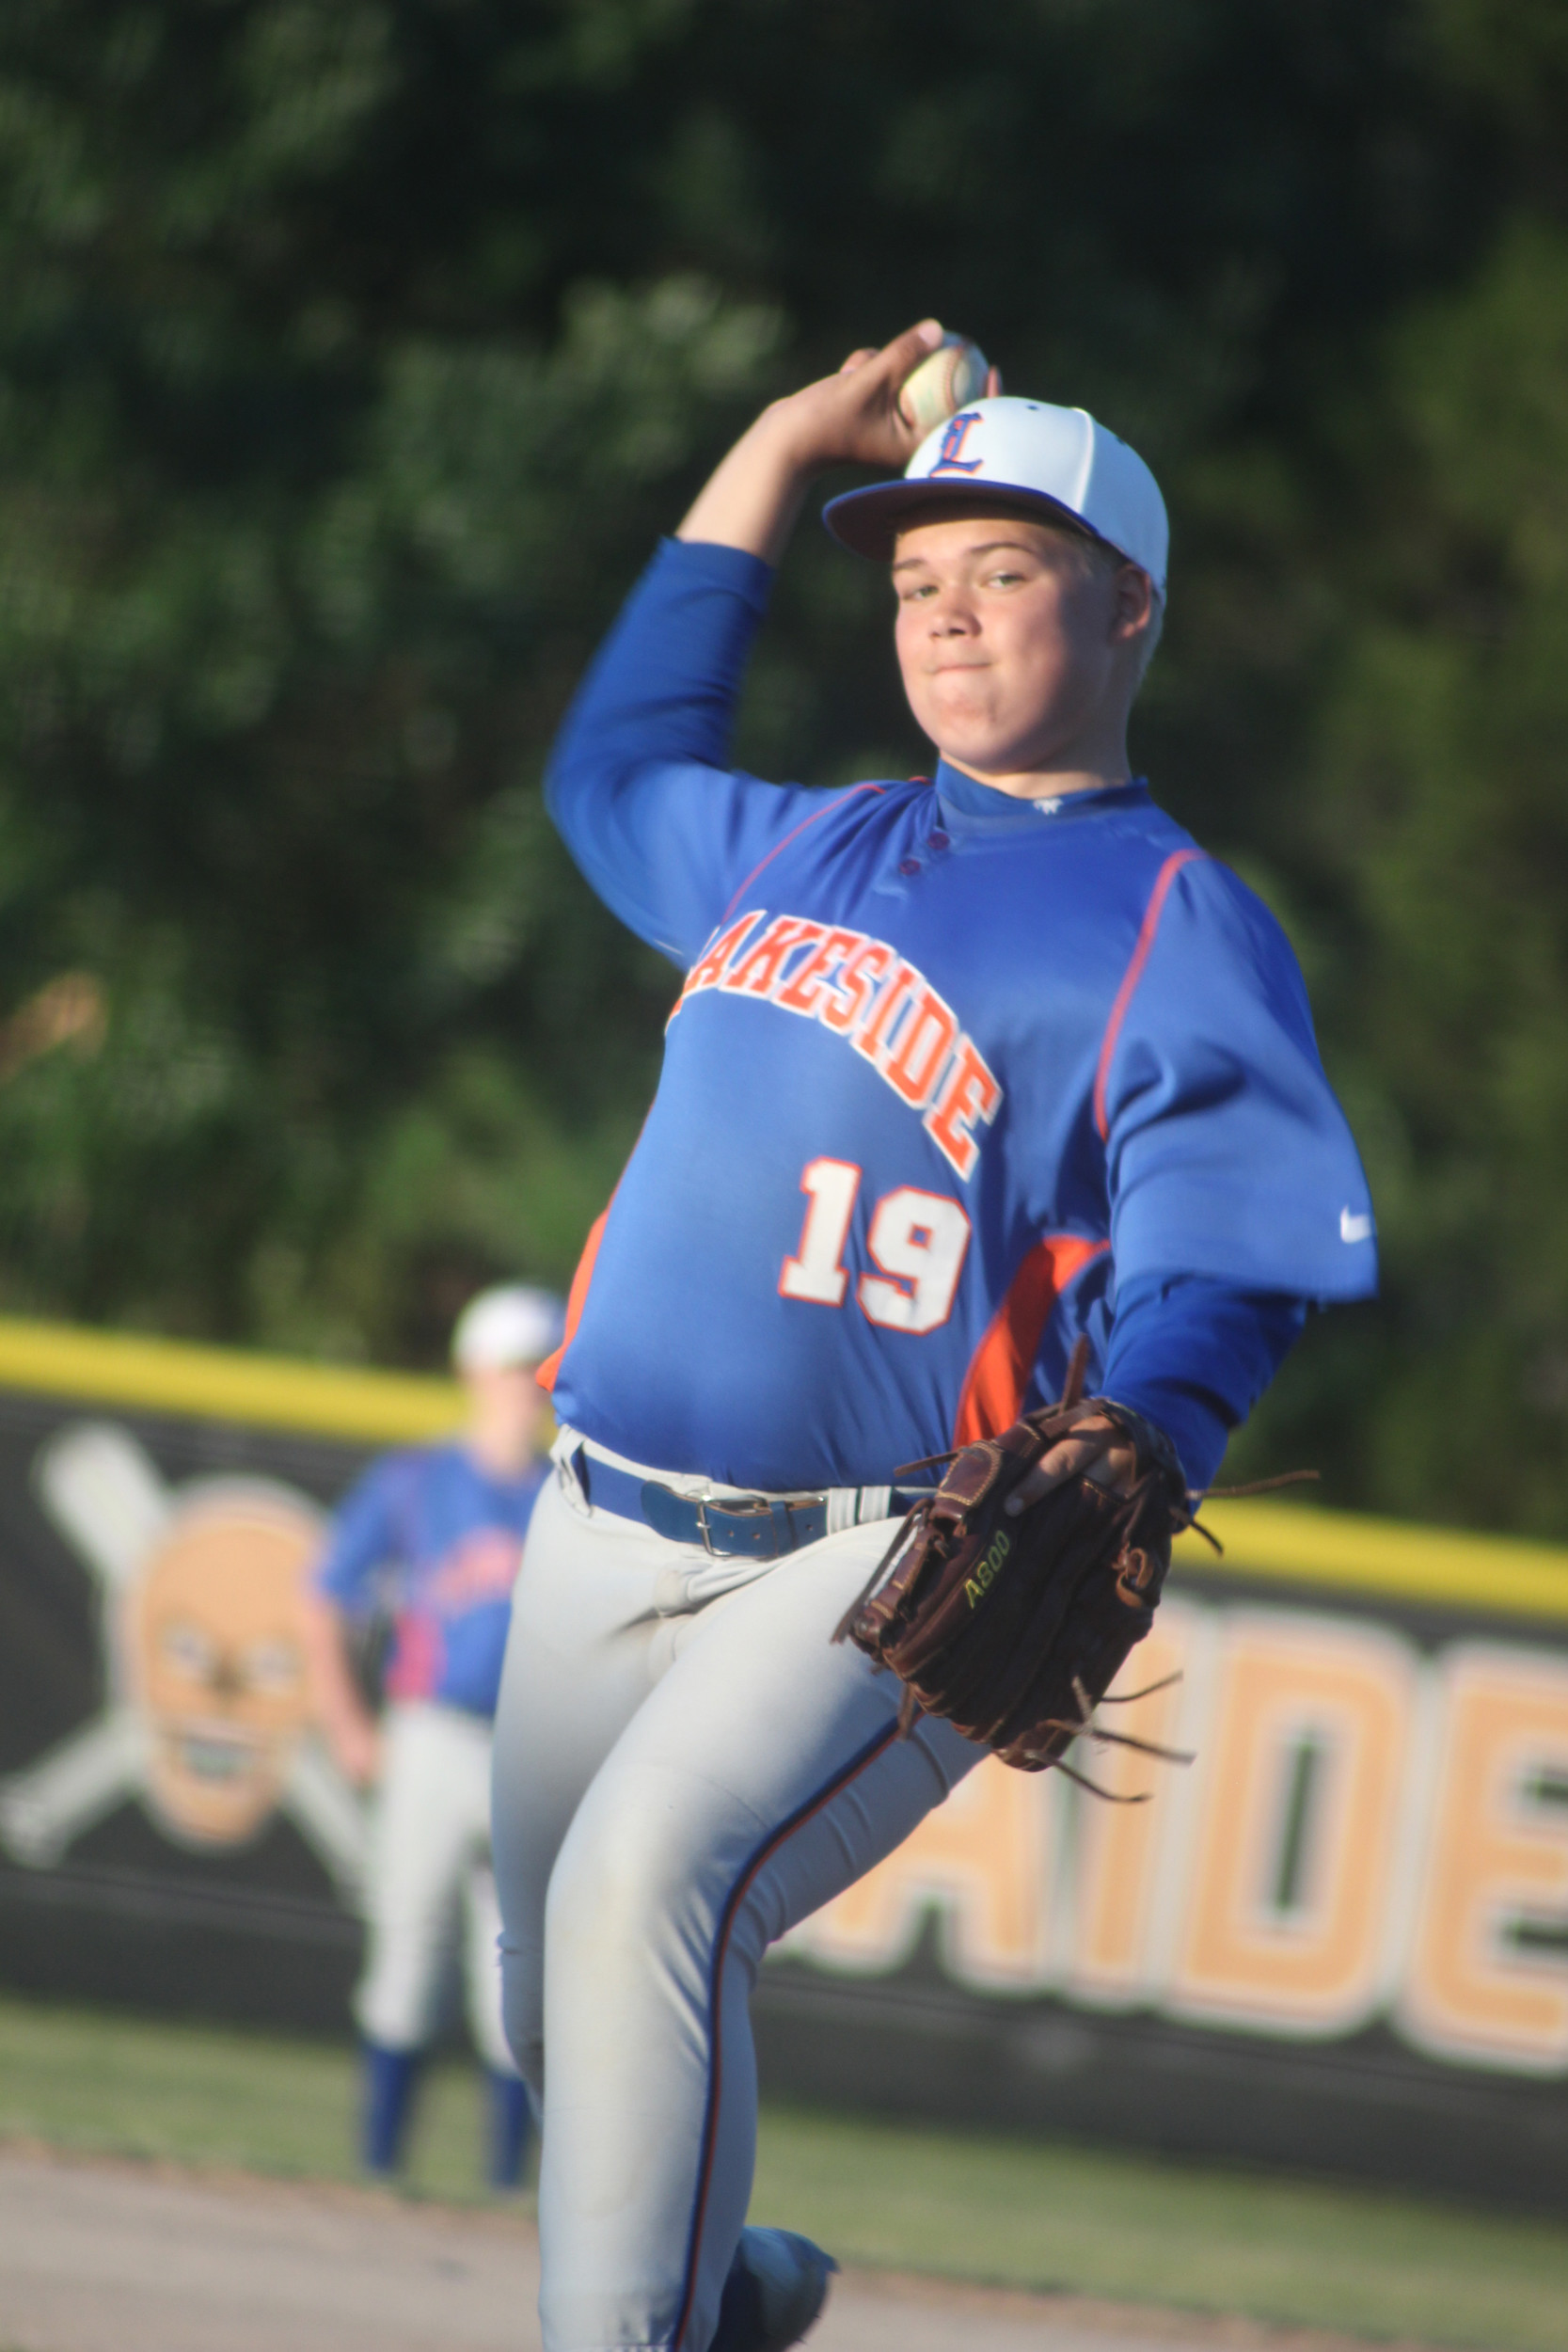 Lakeside Junior High pitcher Ben Johnson lets fly in Gators 7-5 win over Orange Park Junior High on Friday at Orange Park High School